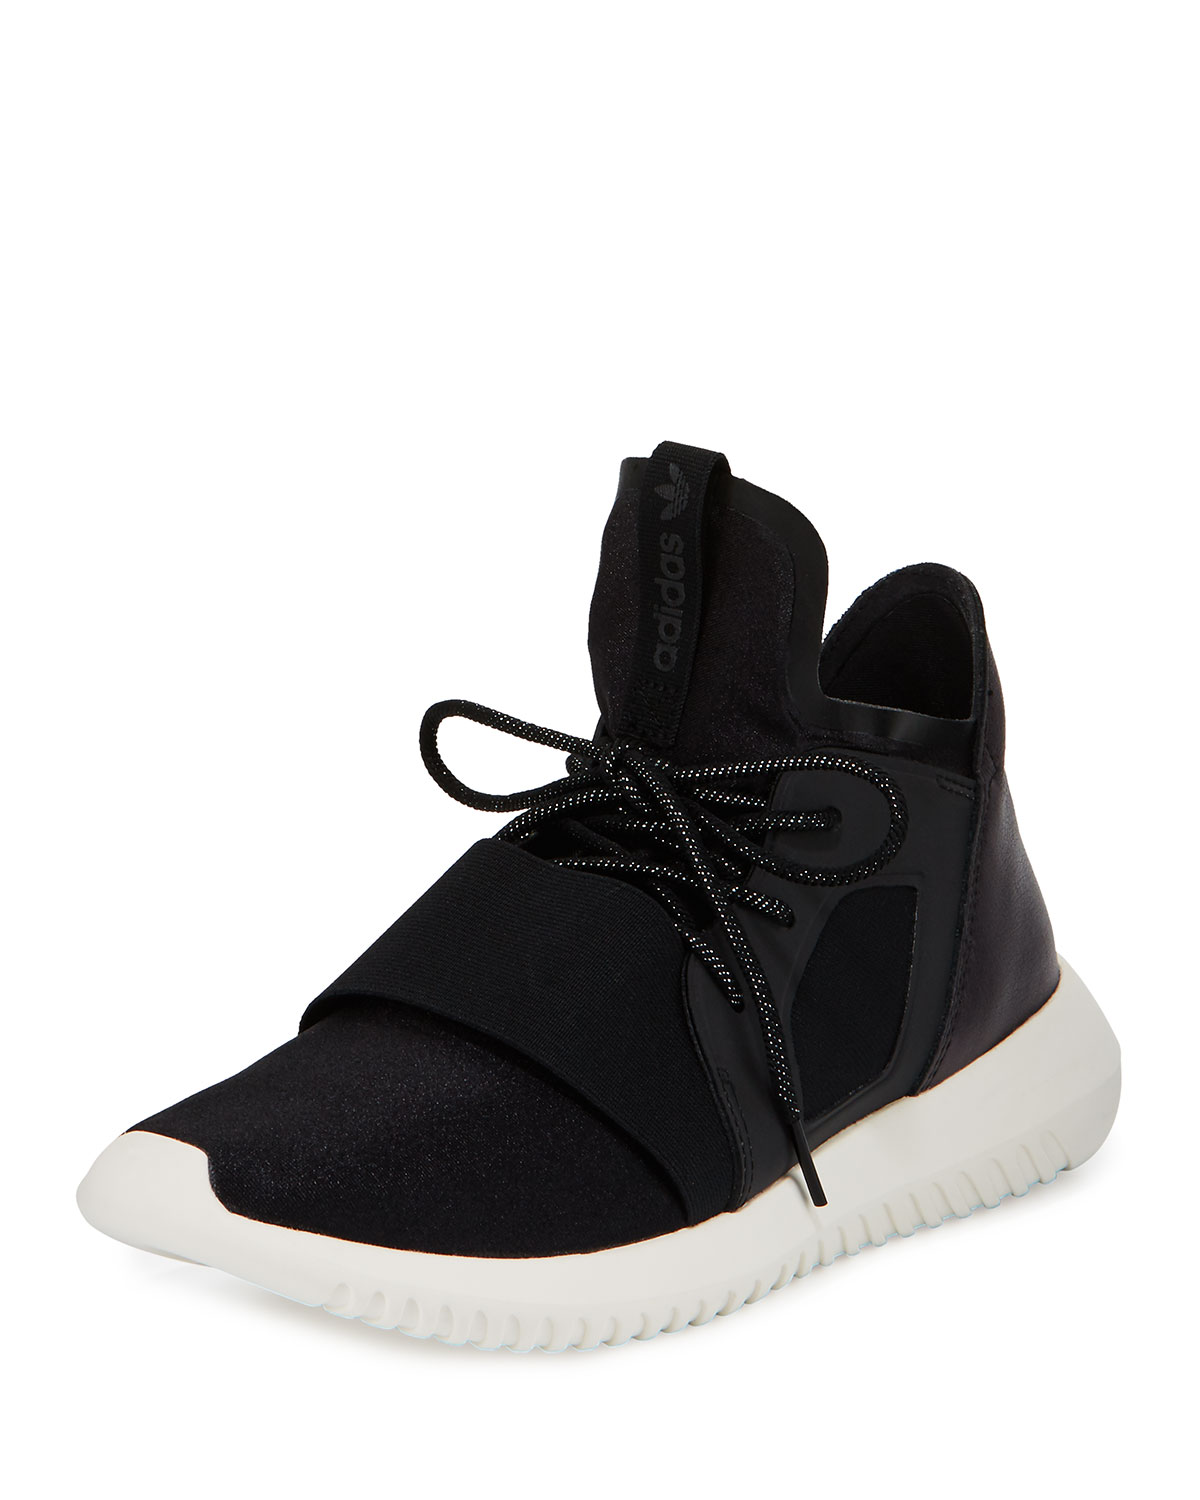 new product 41882 50a42 Tubular Defiant High-Top Sneaker, Core Black/White